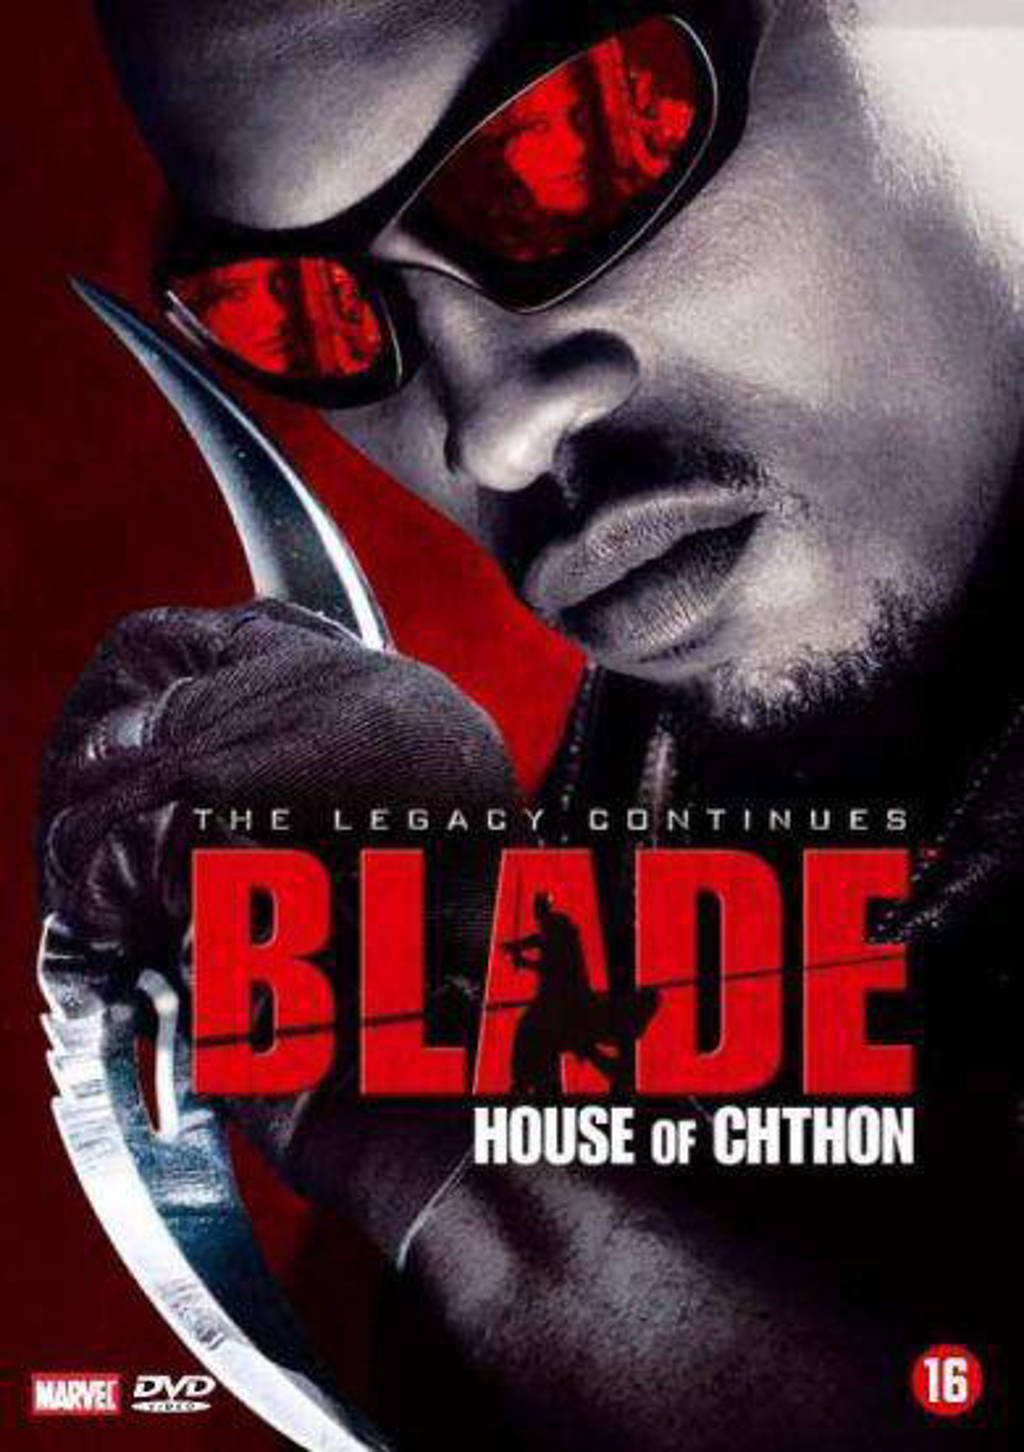 Blade-house of chthon (DVD)